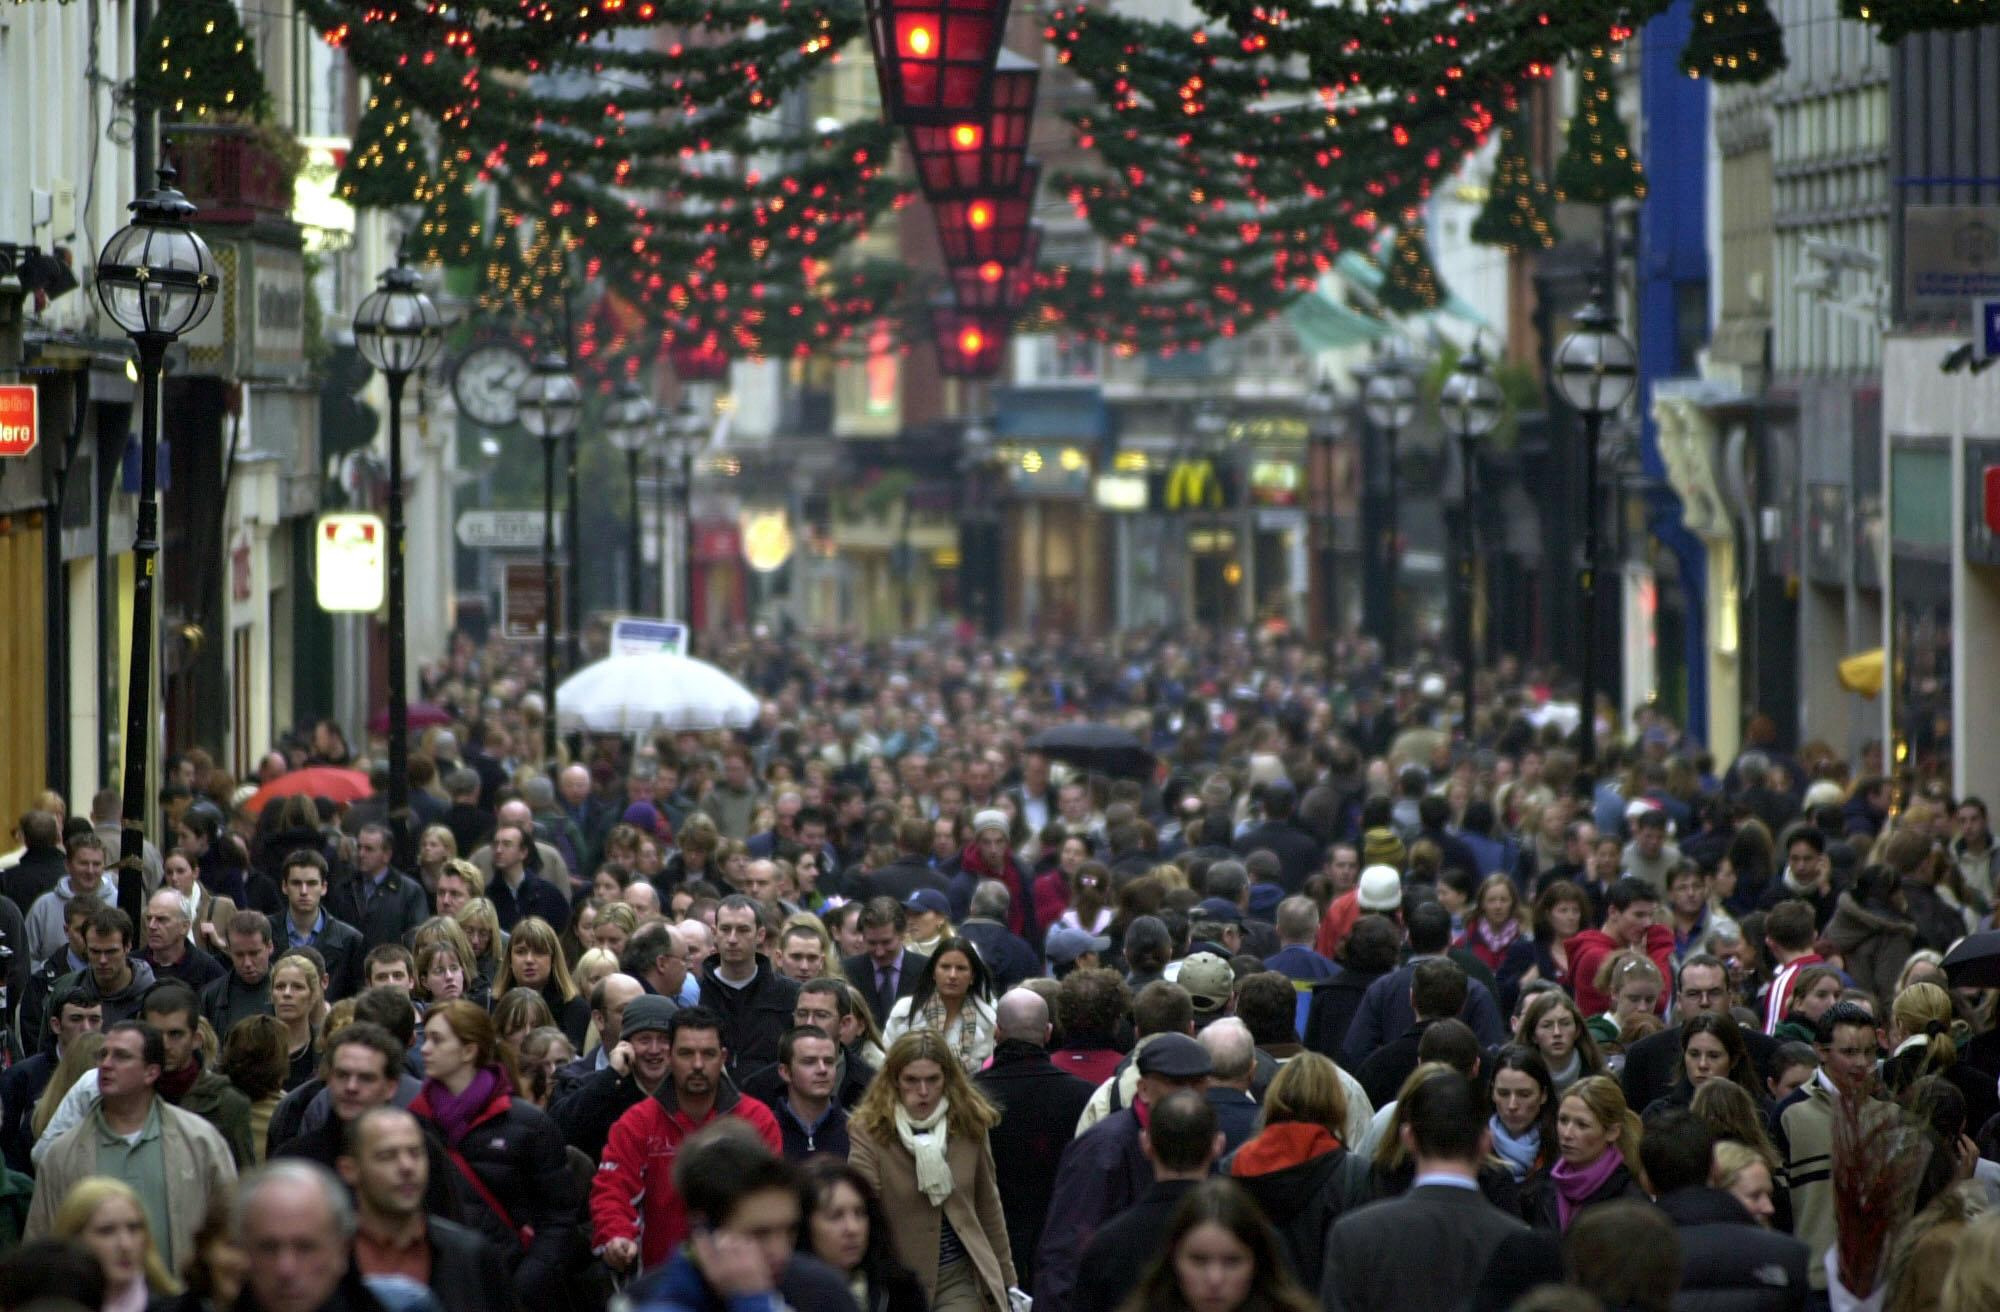 PA File Photo of Christmas shoppers in Gratfton Street, Dublin.  See PA Feature XMAS Shop. PA Photo/Hayden West.